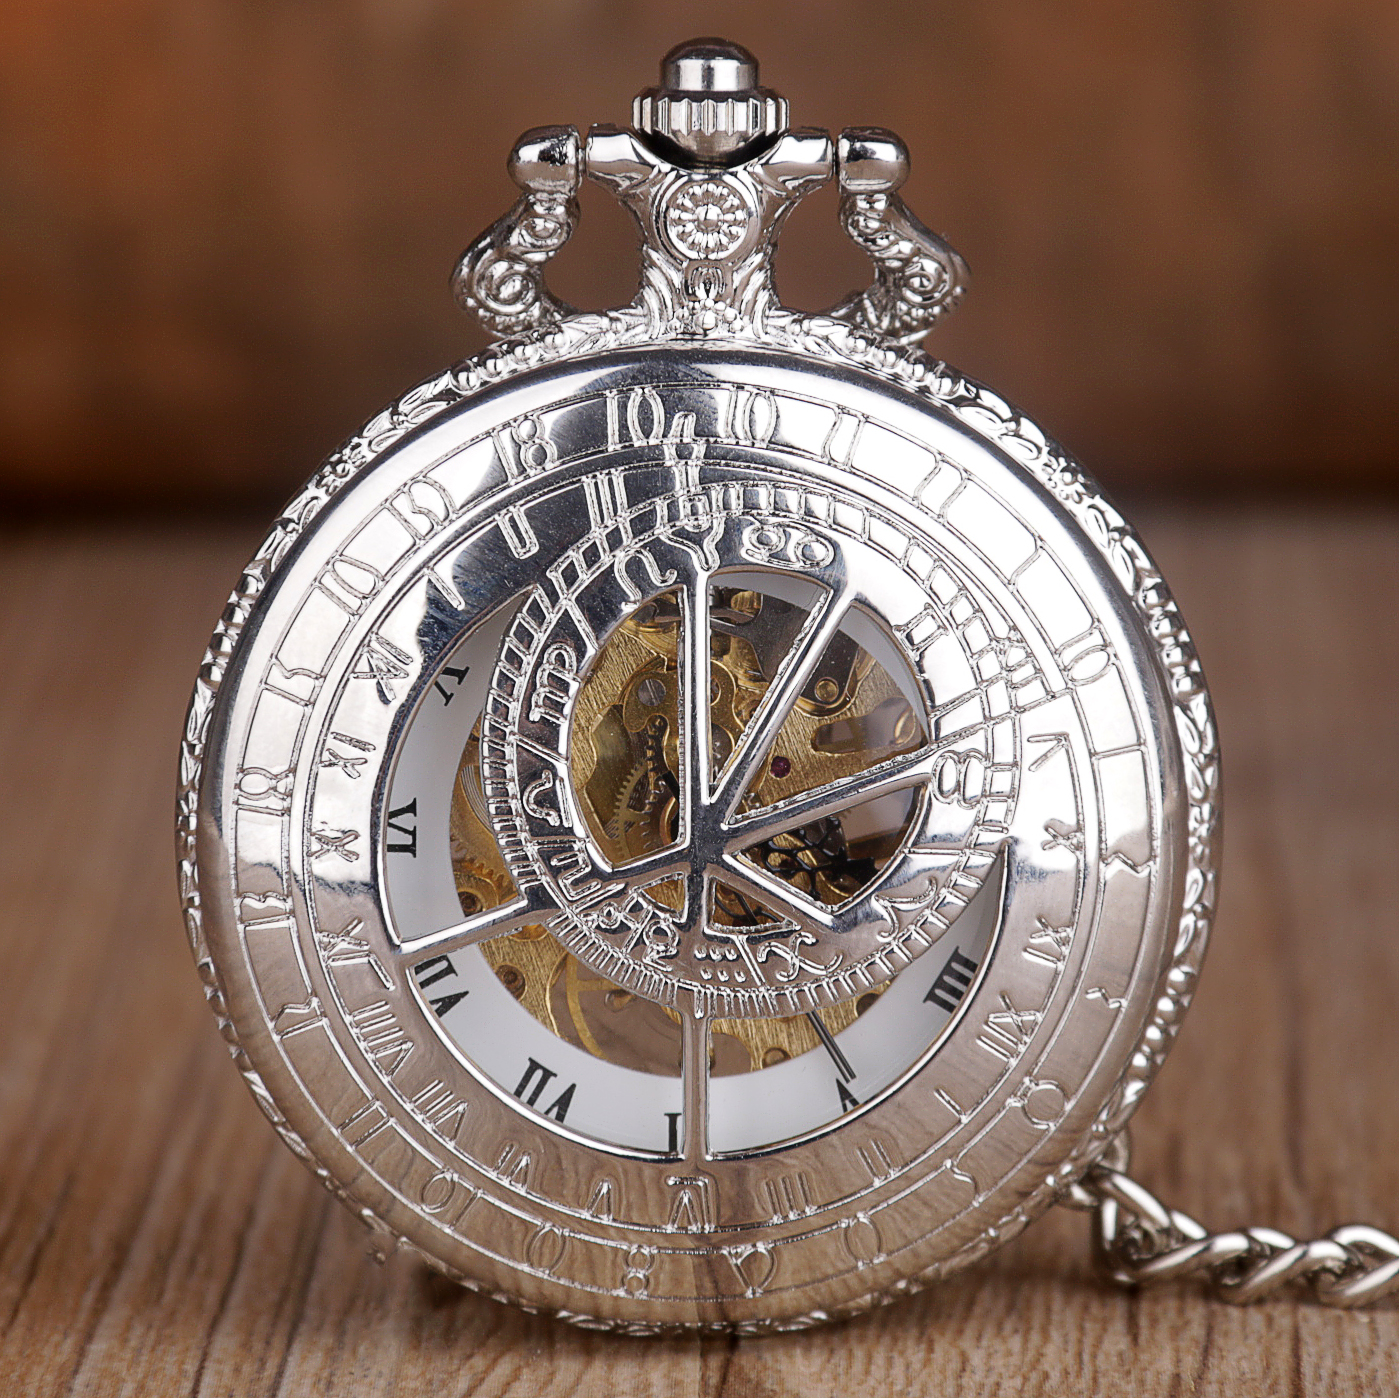 Permalink to Silver Steampunk Pocket Watches Mechanical Pocket Watches Skeleton Vintage Hand Winding Pocket Fob Watch With Fob Chain